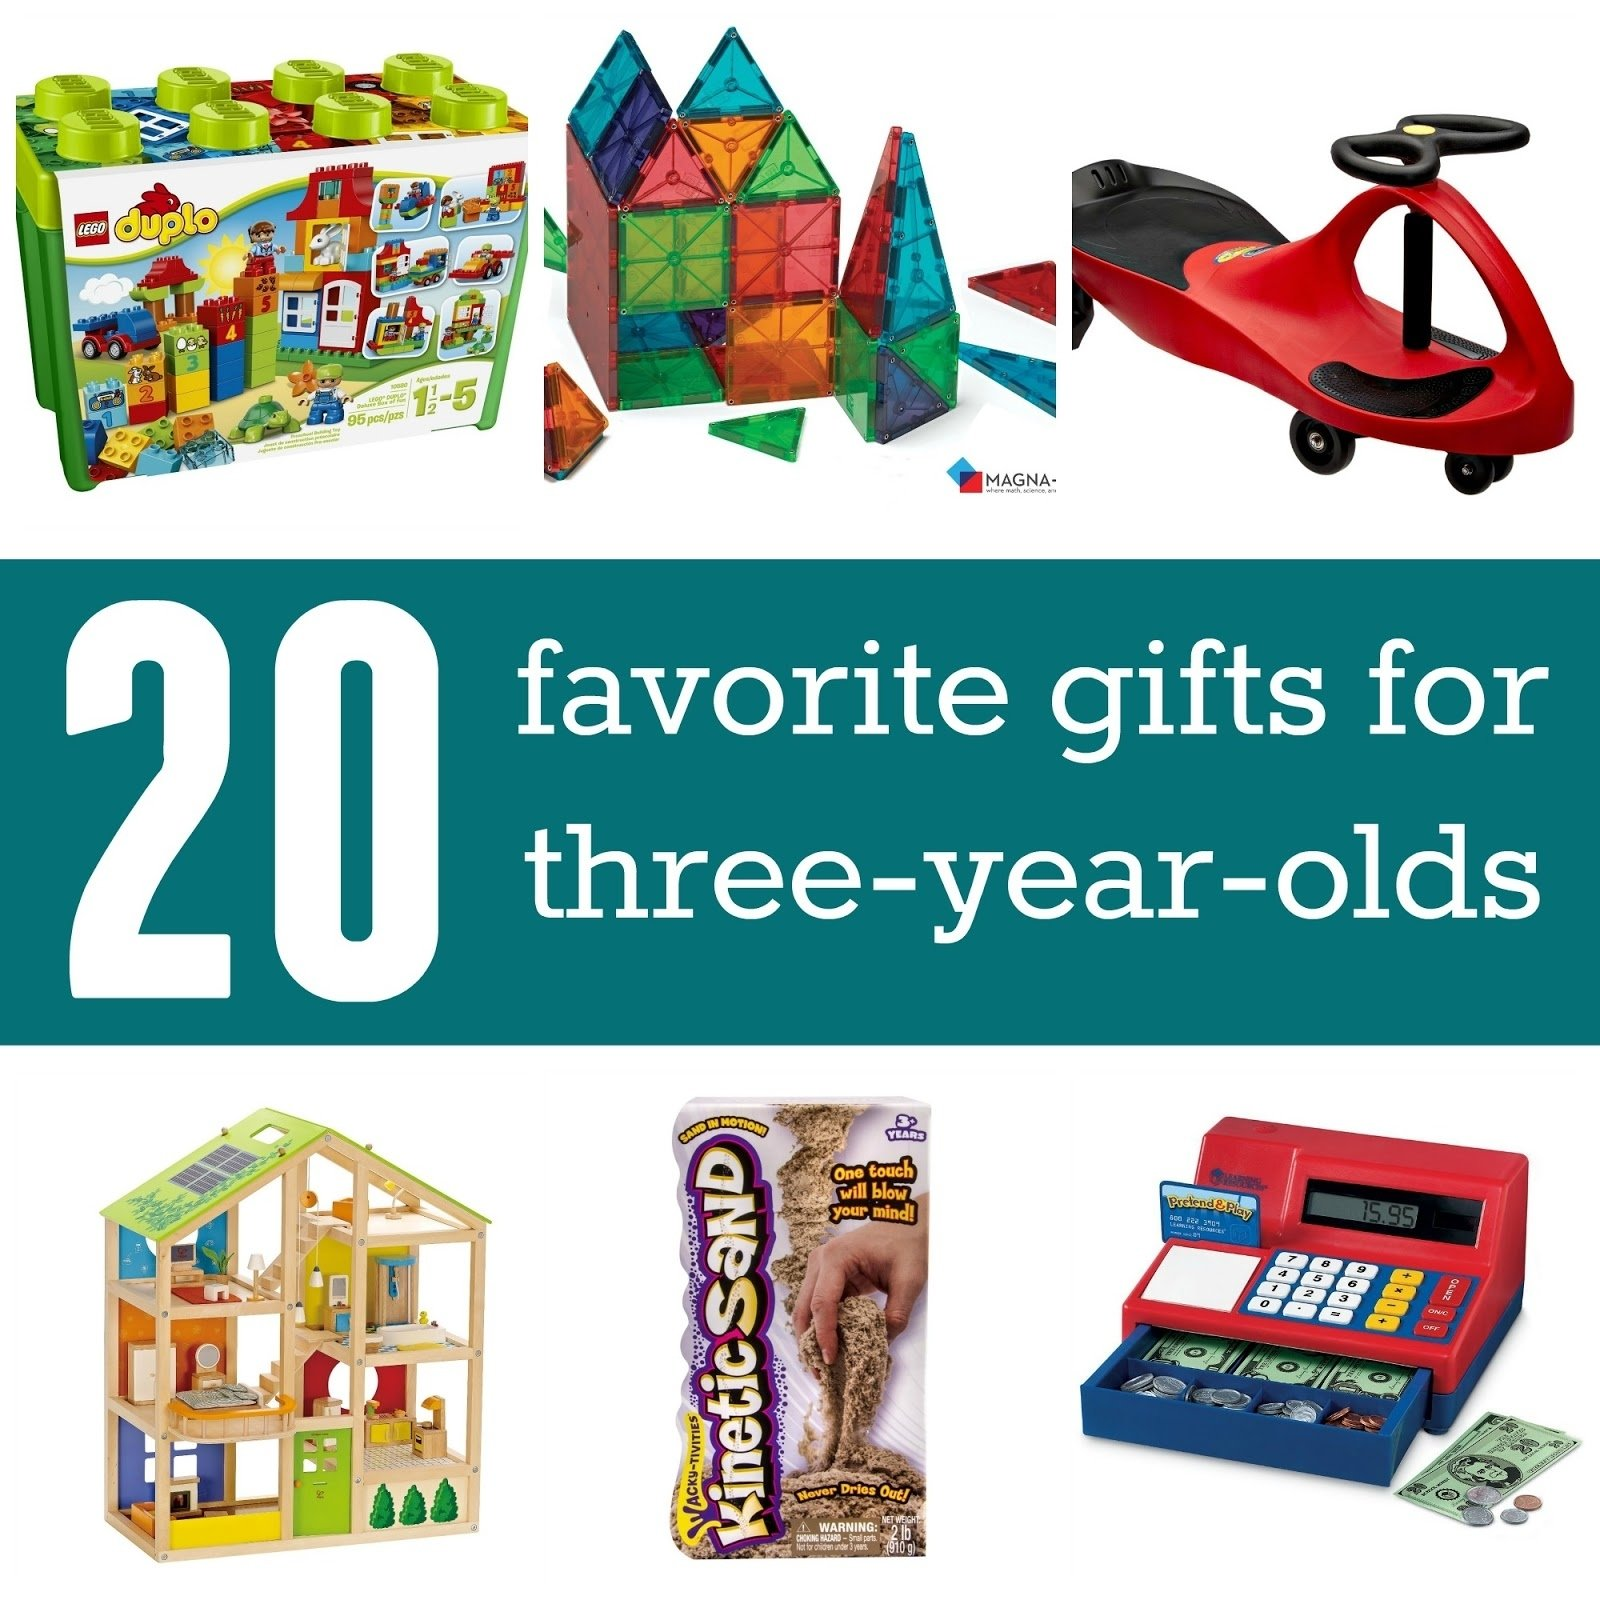 10 Wonderful Birthday Gift Ideas For 3 Year Old Boy Toddler Approved Favorite Gifts